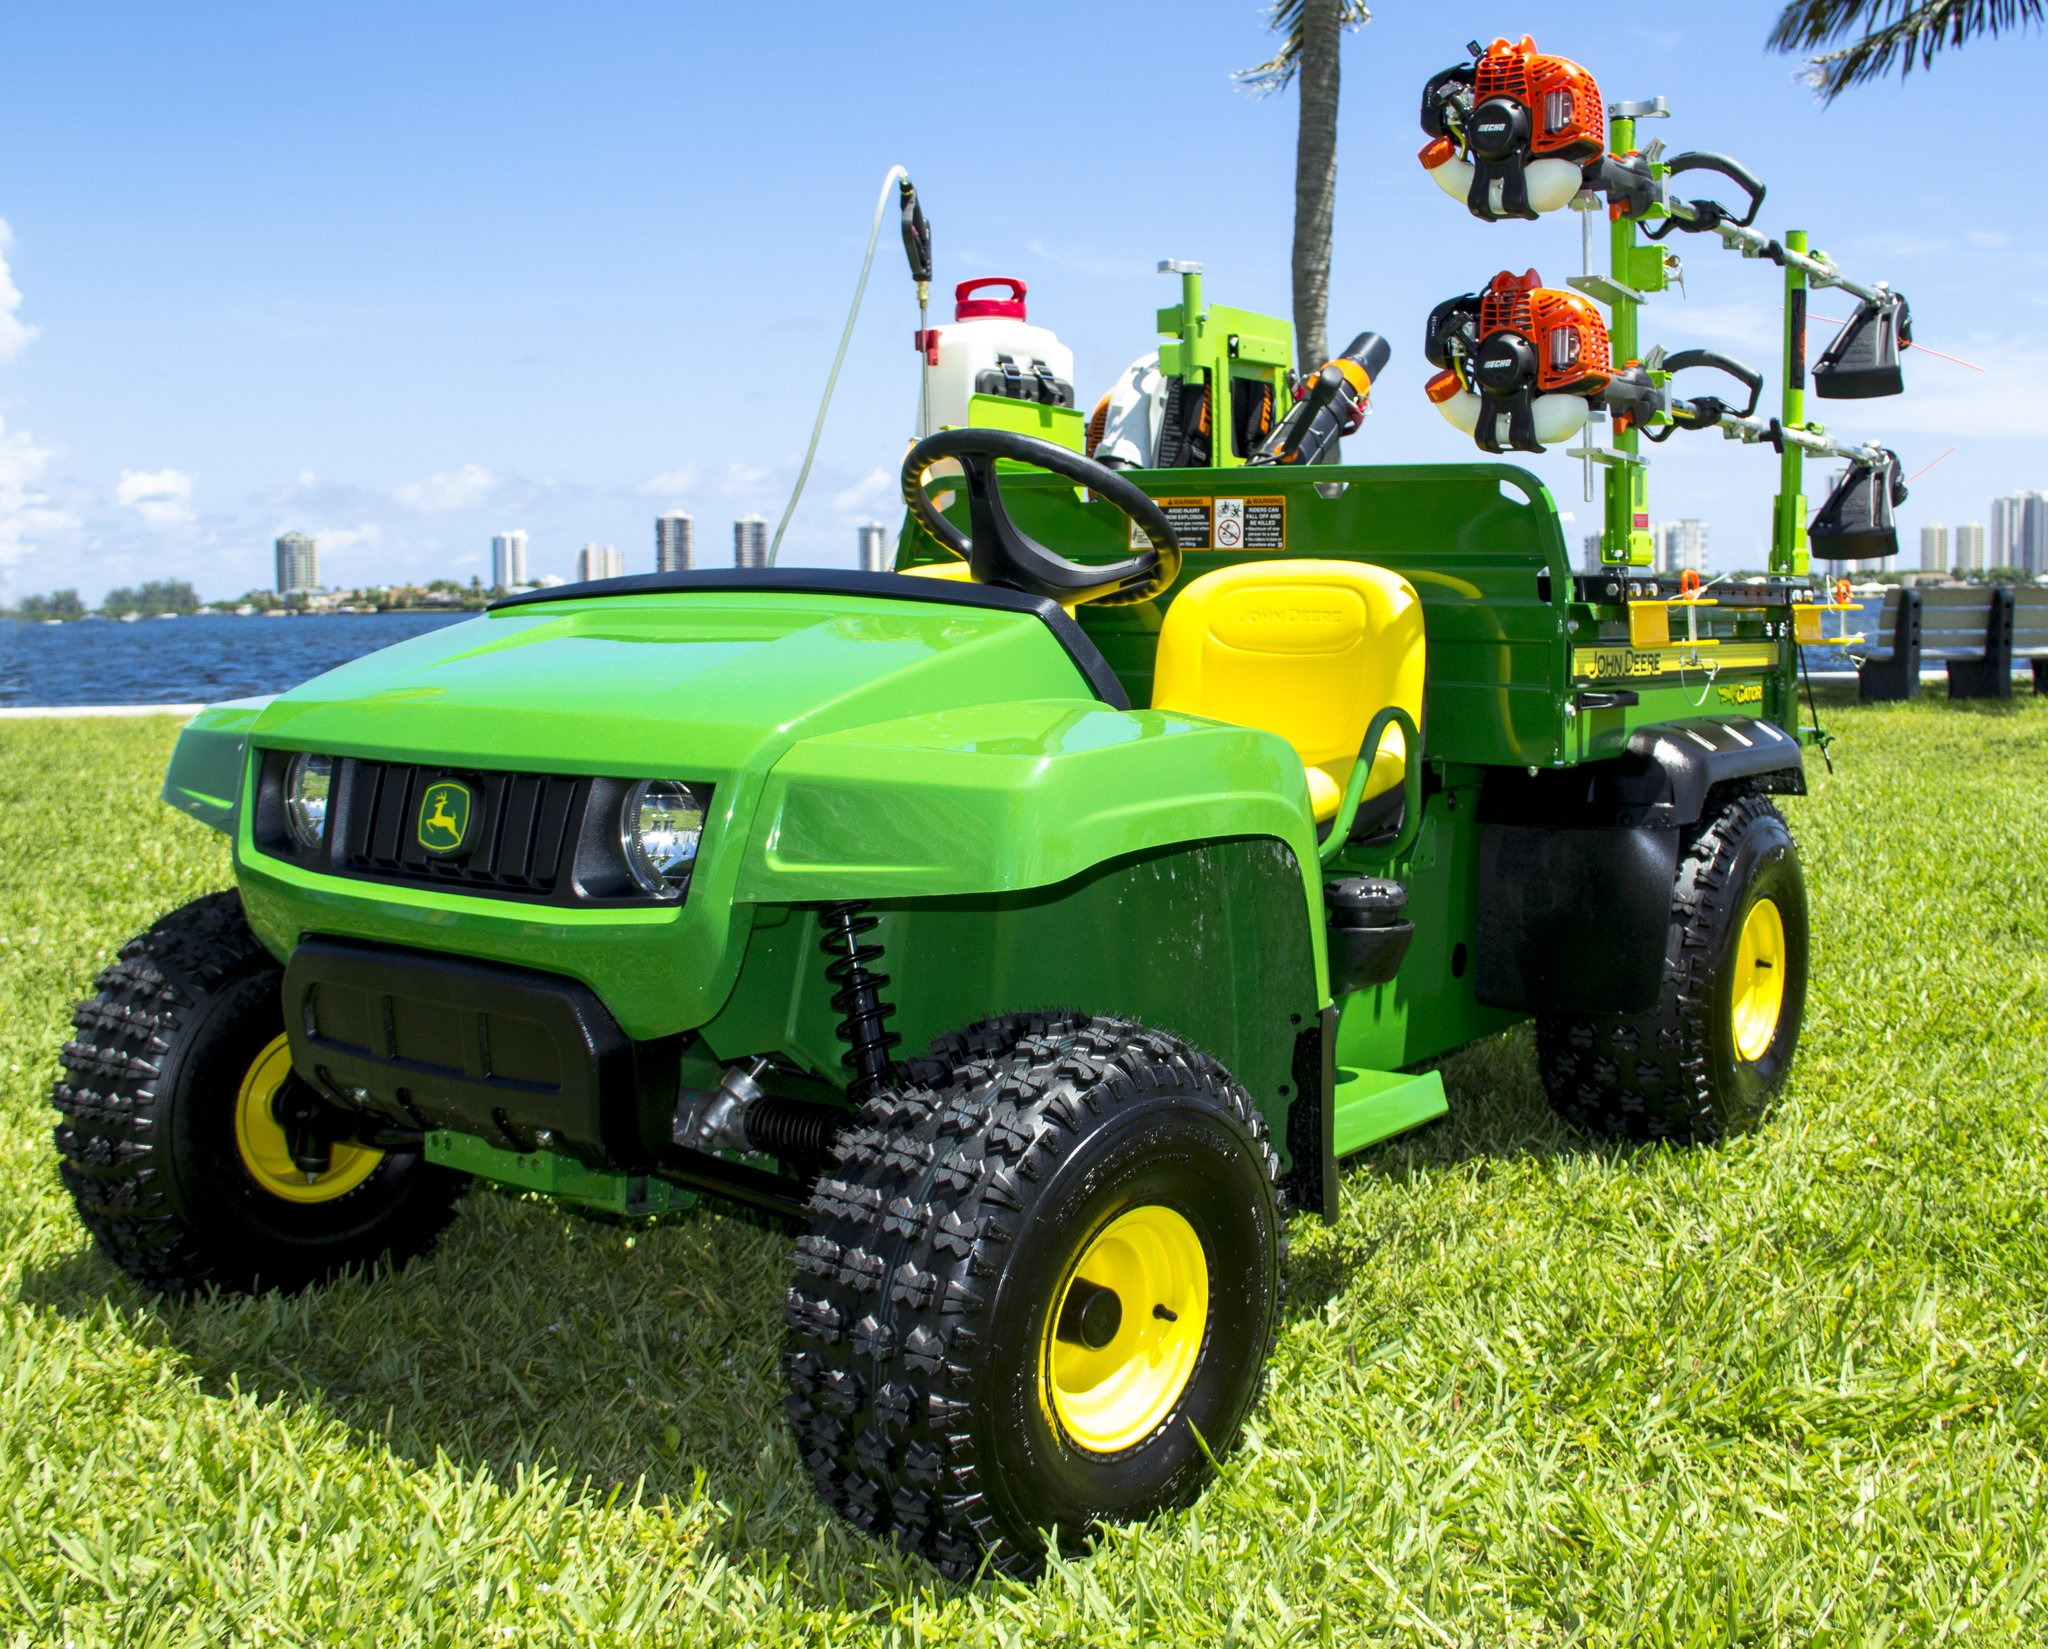 Trailerracks Com Green Touch Industries Rbp204 Bed Rail System For John Deere Plastic Metal Beds Landscape Architect